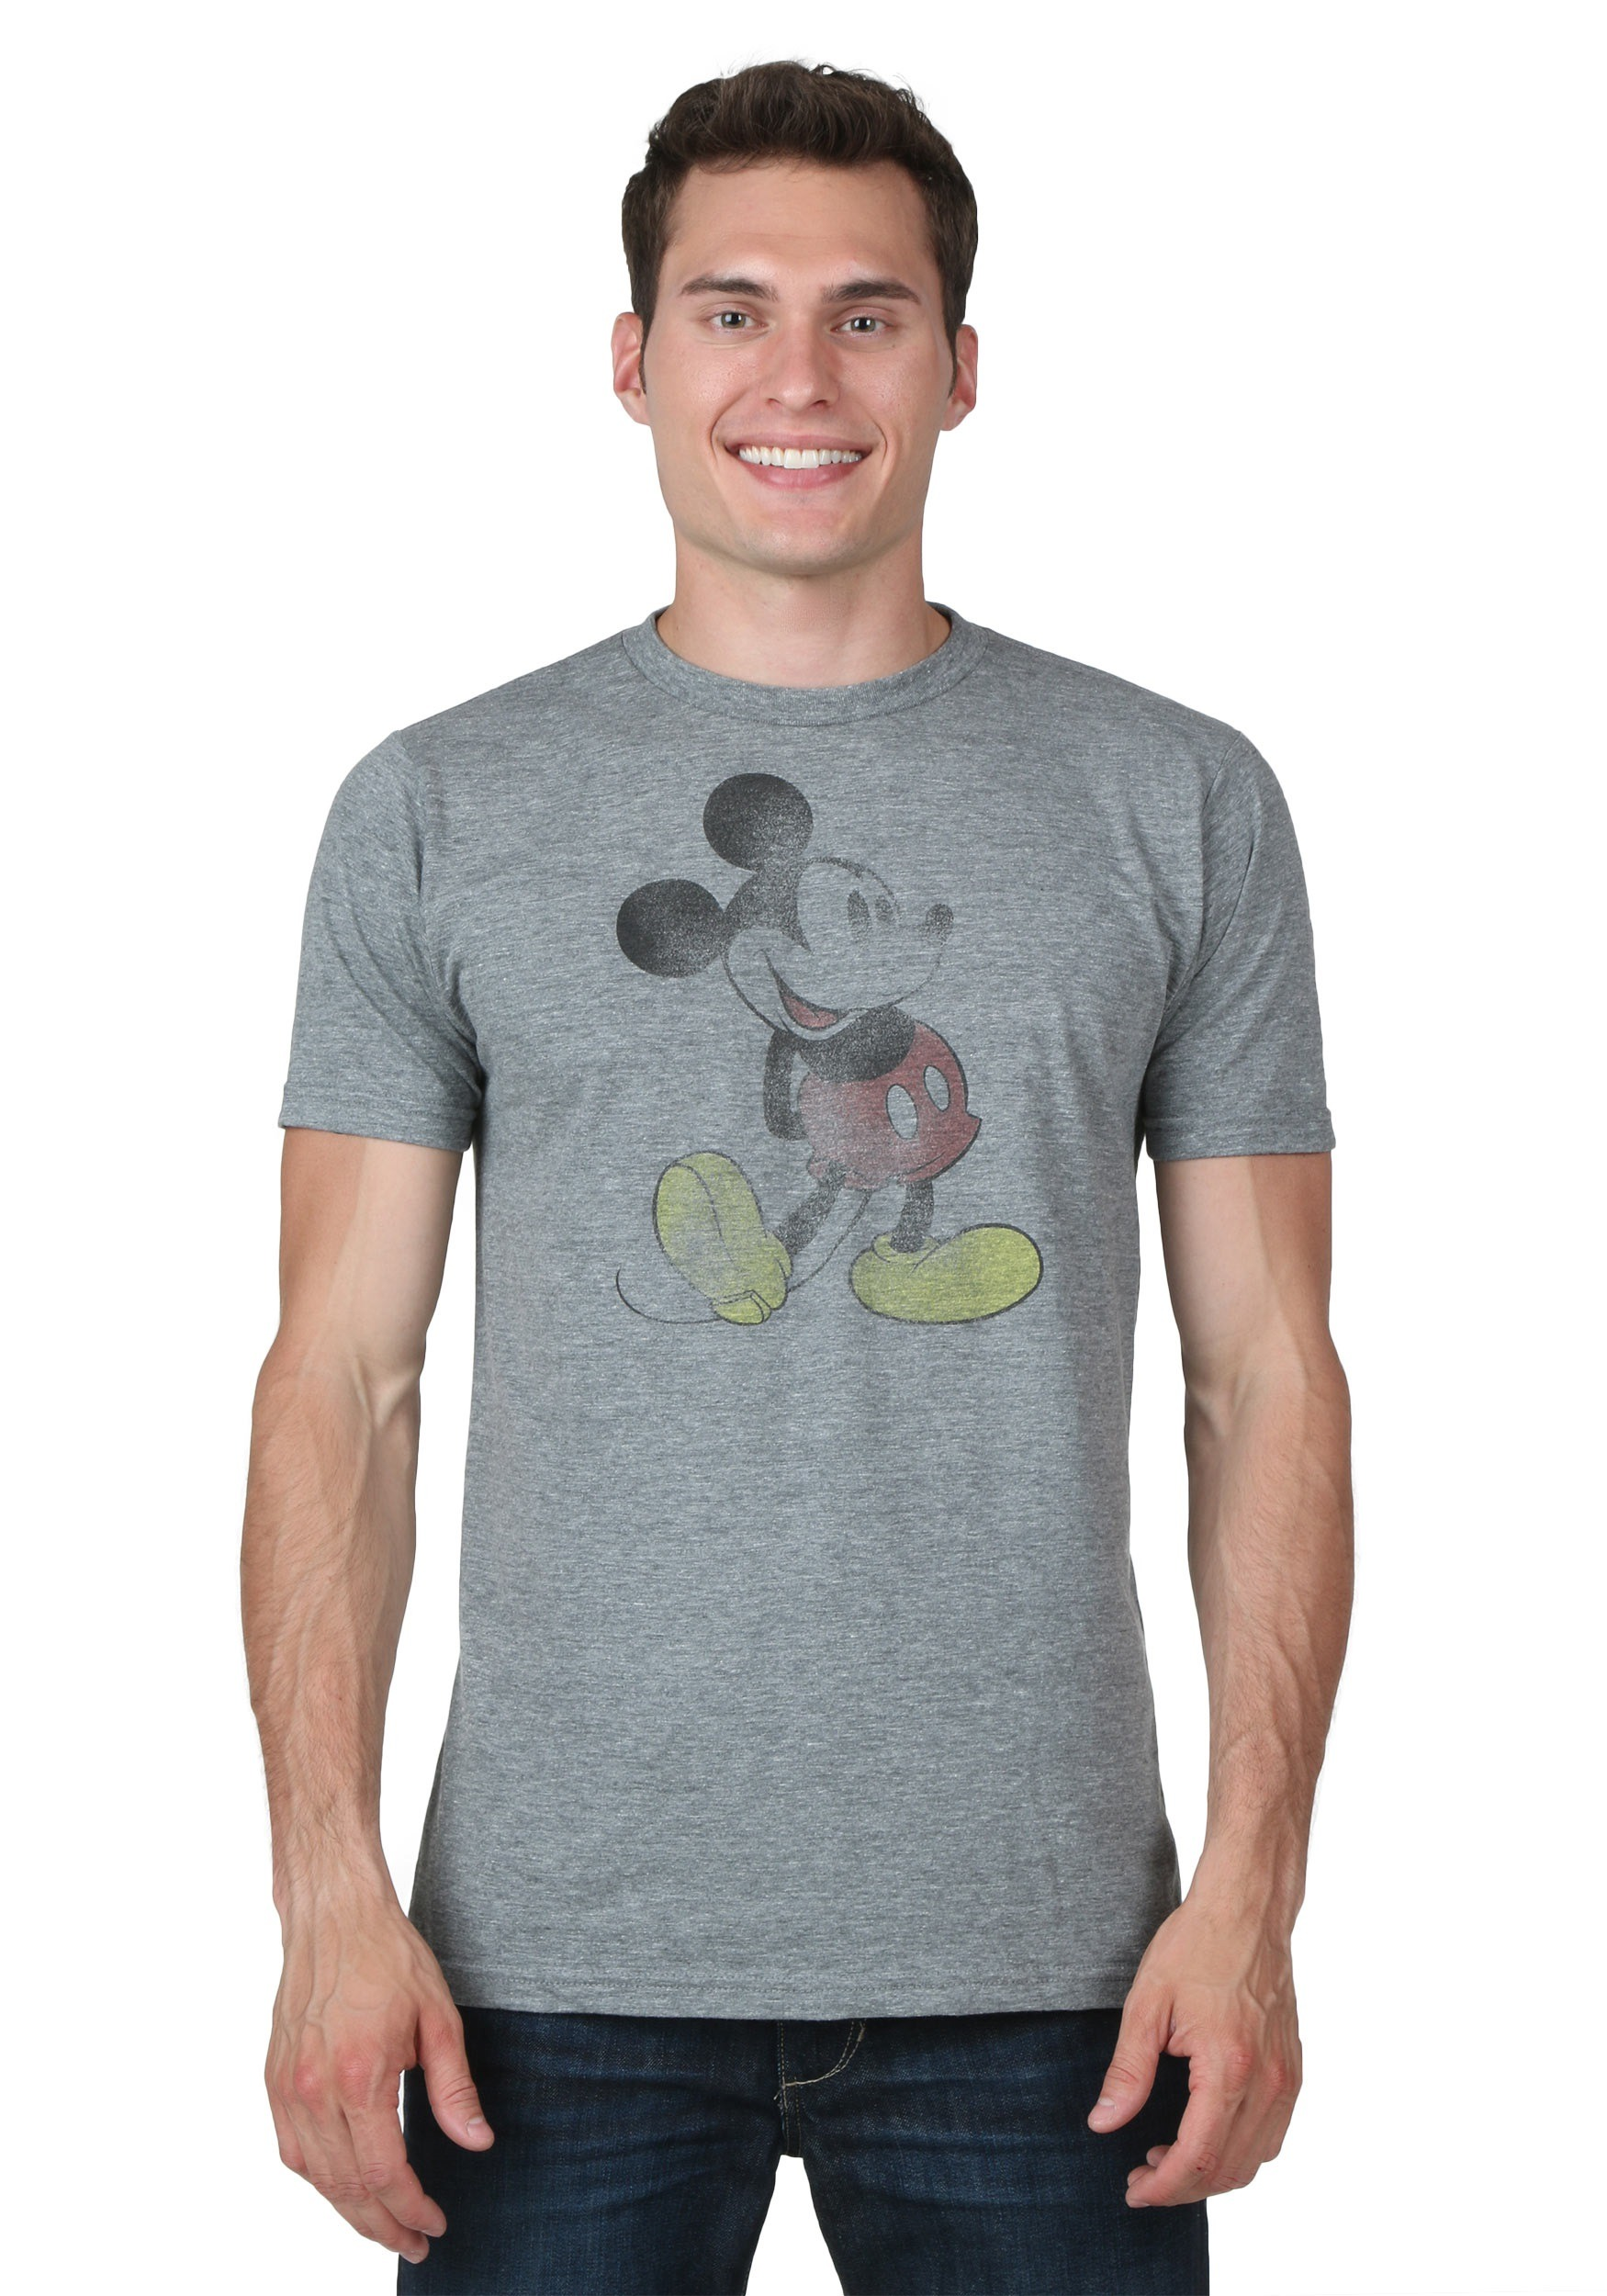 Mad Engine Disney T Shirt Mickey Mouse Tee Always Awesome Cartoon Character Boy's Top. Sold by Seven Times Six. $ $ Disney T Shirt Mickey Mouse Steppin' In Cartoon Graphic Toddler Tee. Sold by Seven Times Six. $ $ Disney T Shirt Mickey .